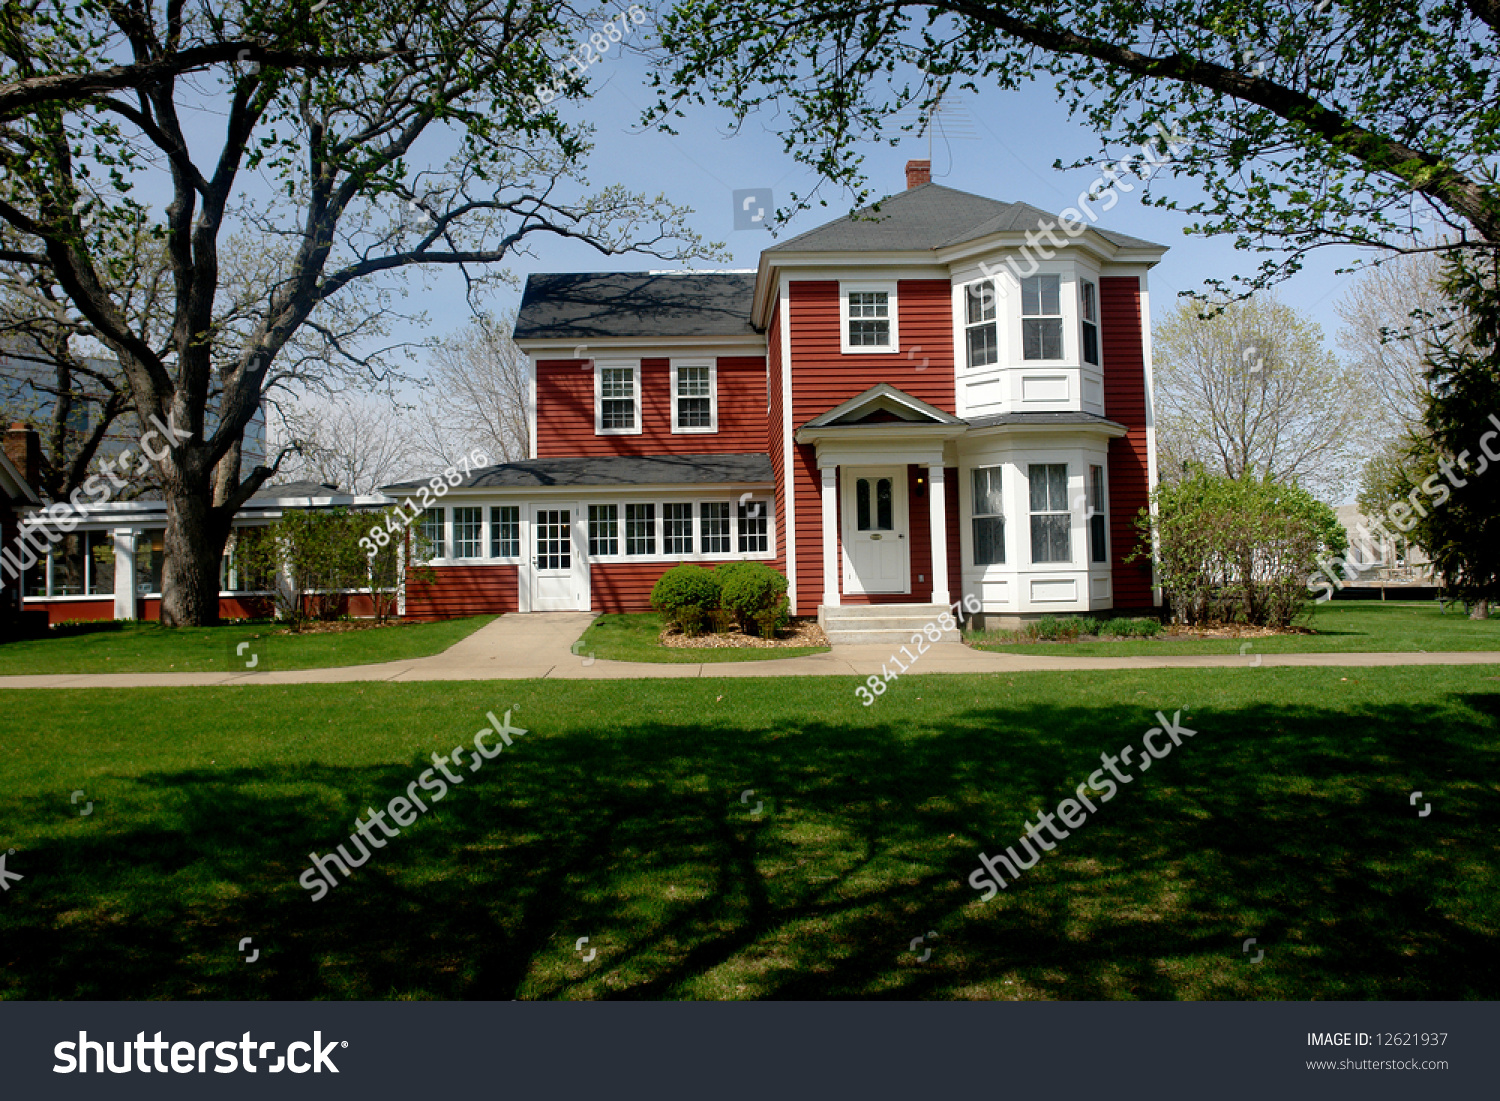 A picture of a red farm house with shade in the yard